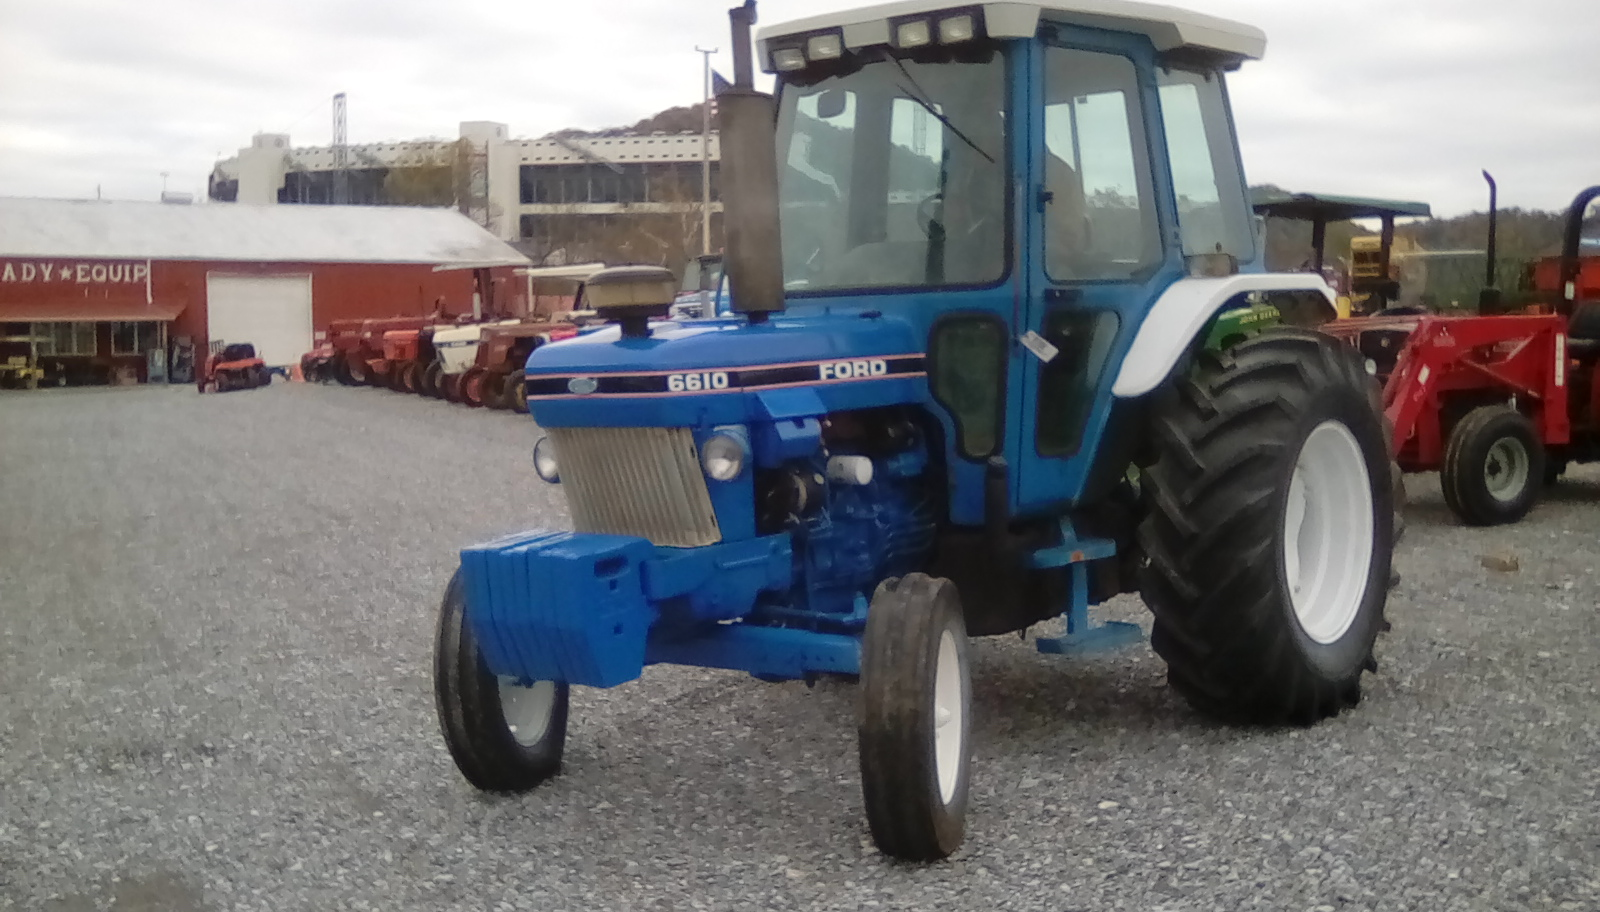 FORD 6610 TRACTOR Image